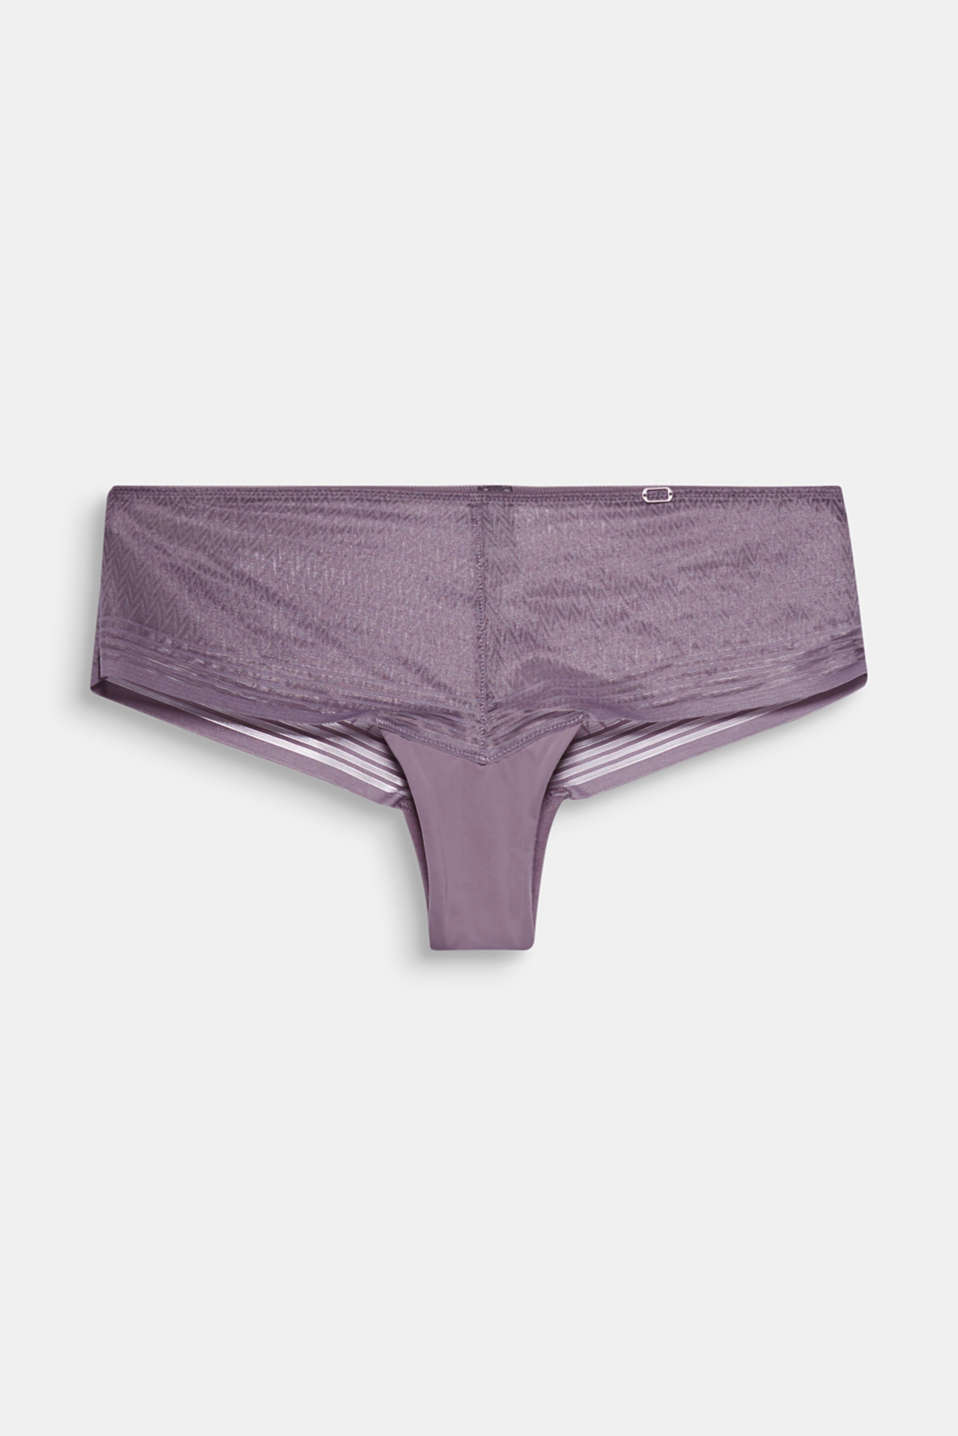 8TH AVENUE collection - delicate, geometric mesh gives these sexy Brazilian hipster shorts their light and elegant look!